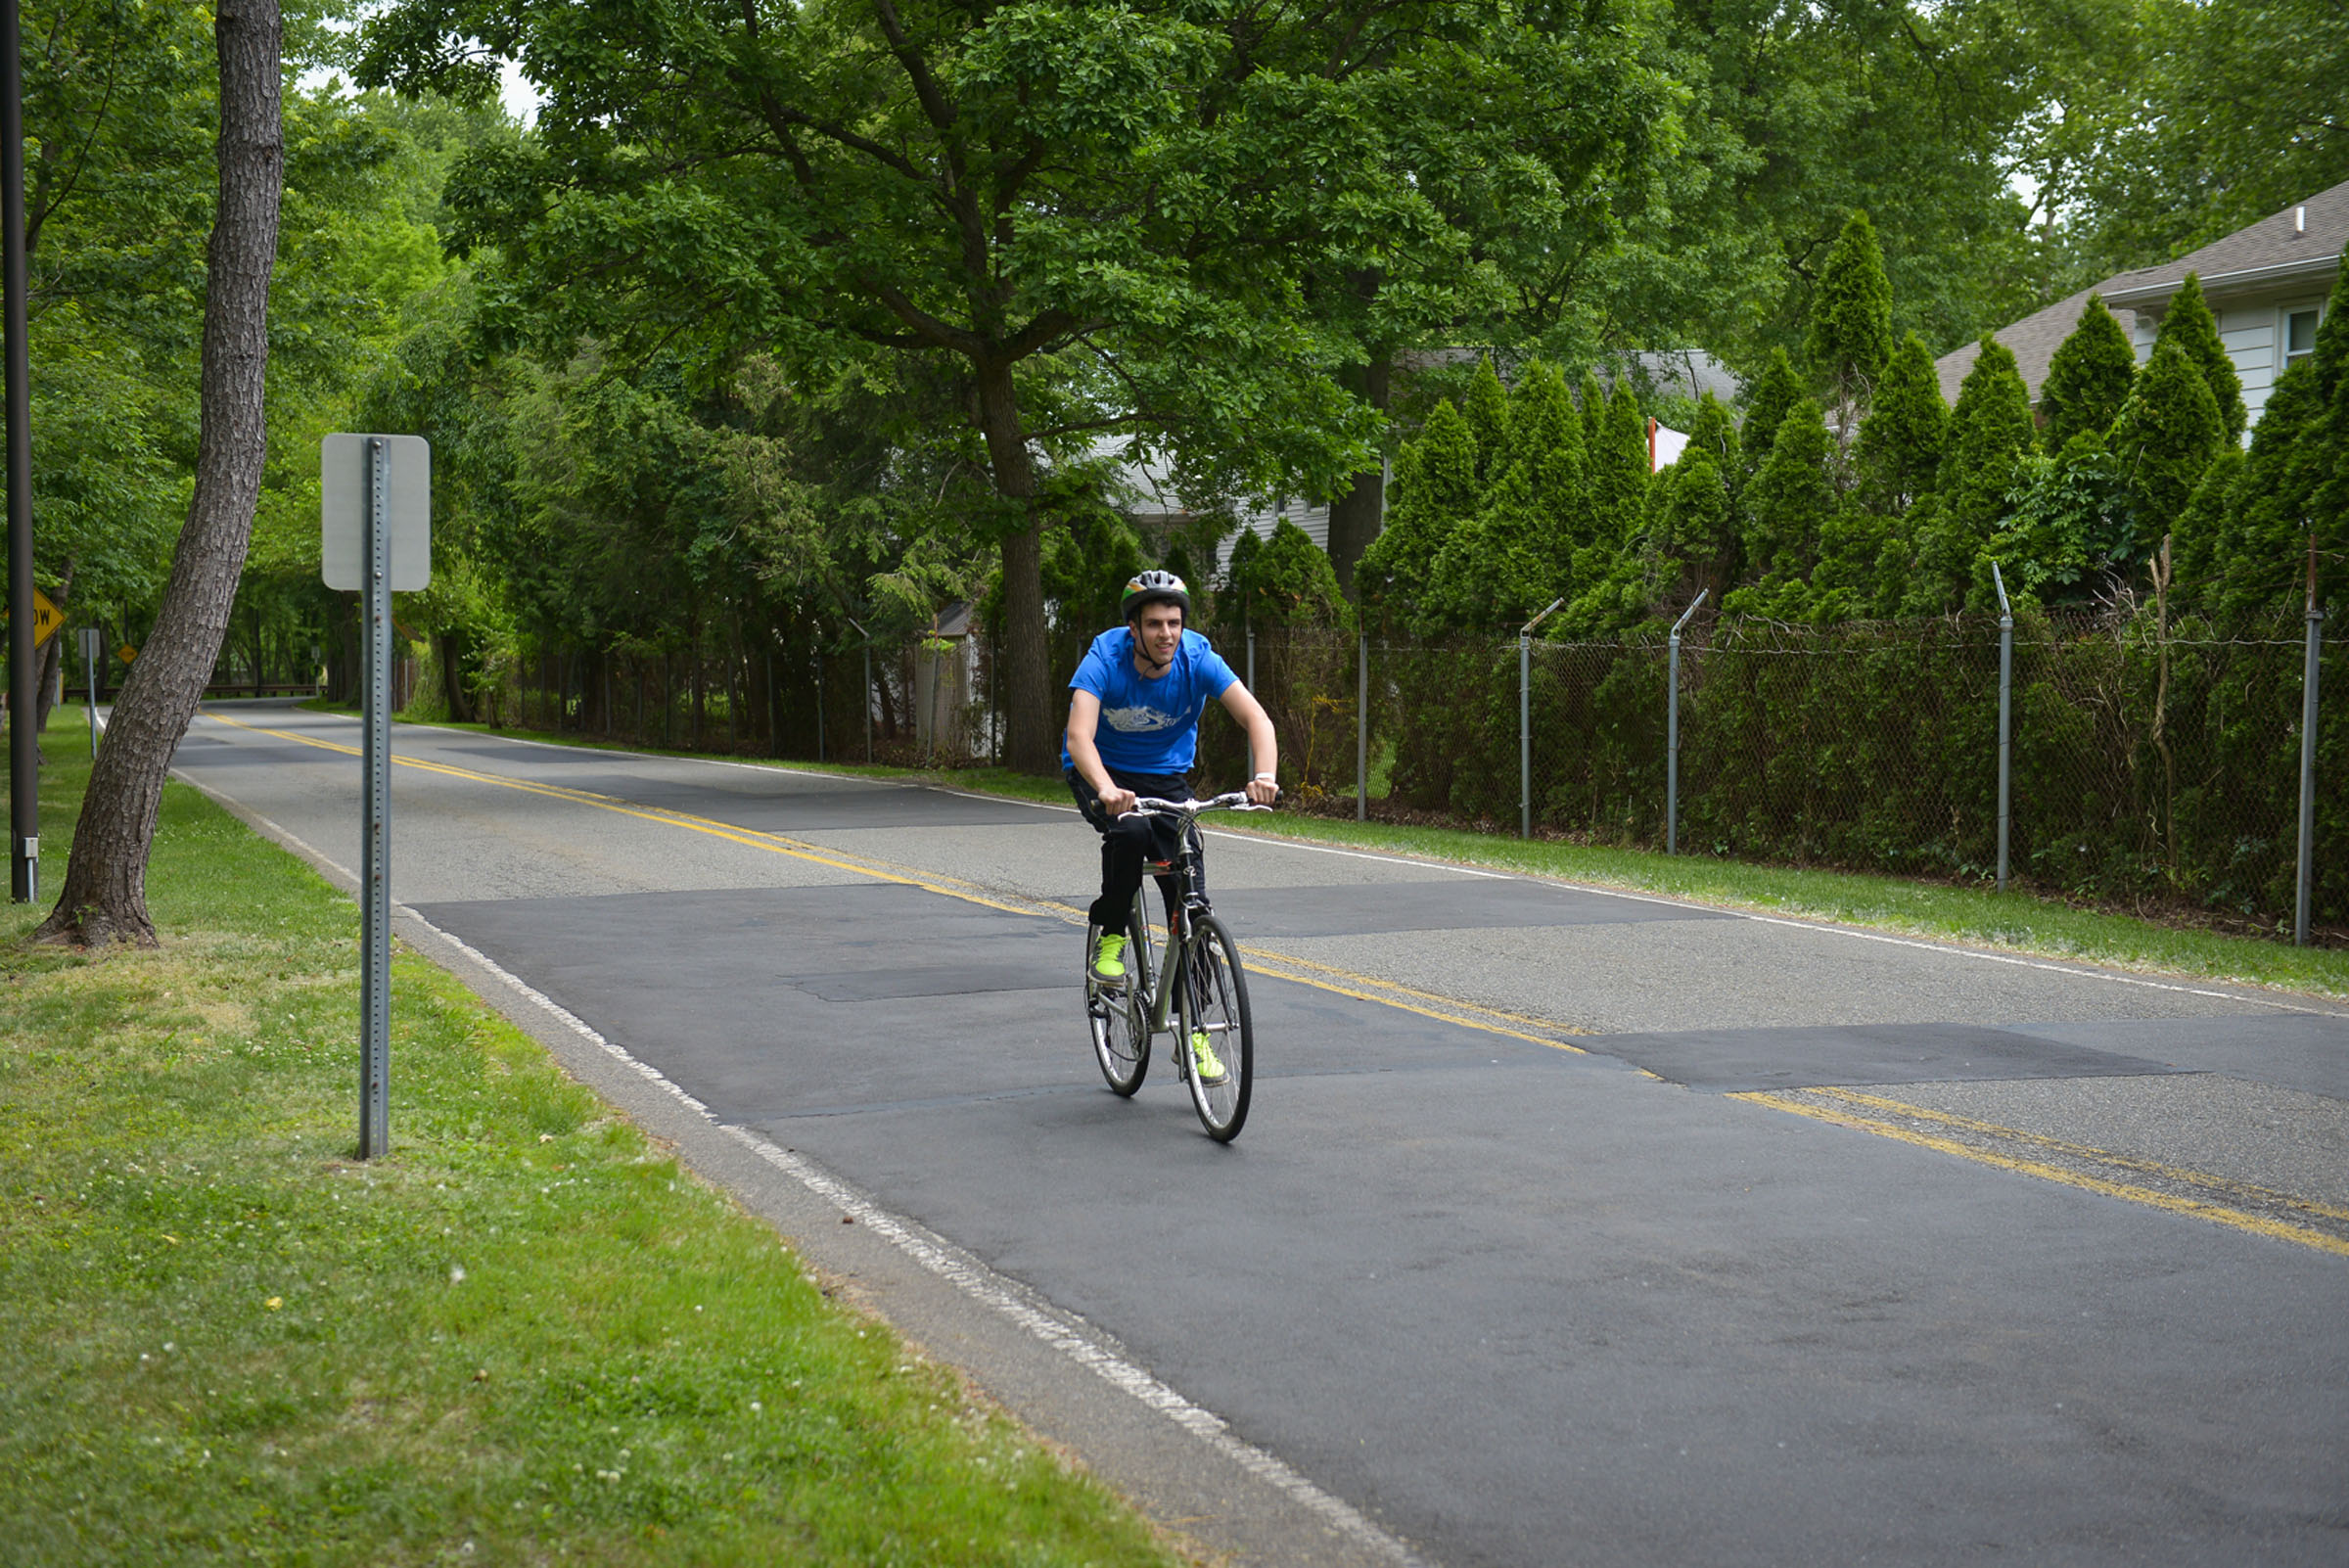 2017-06-04 GTD4A Charity Bike Ride - BCC - Paramus NJ-2428.jpg